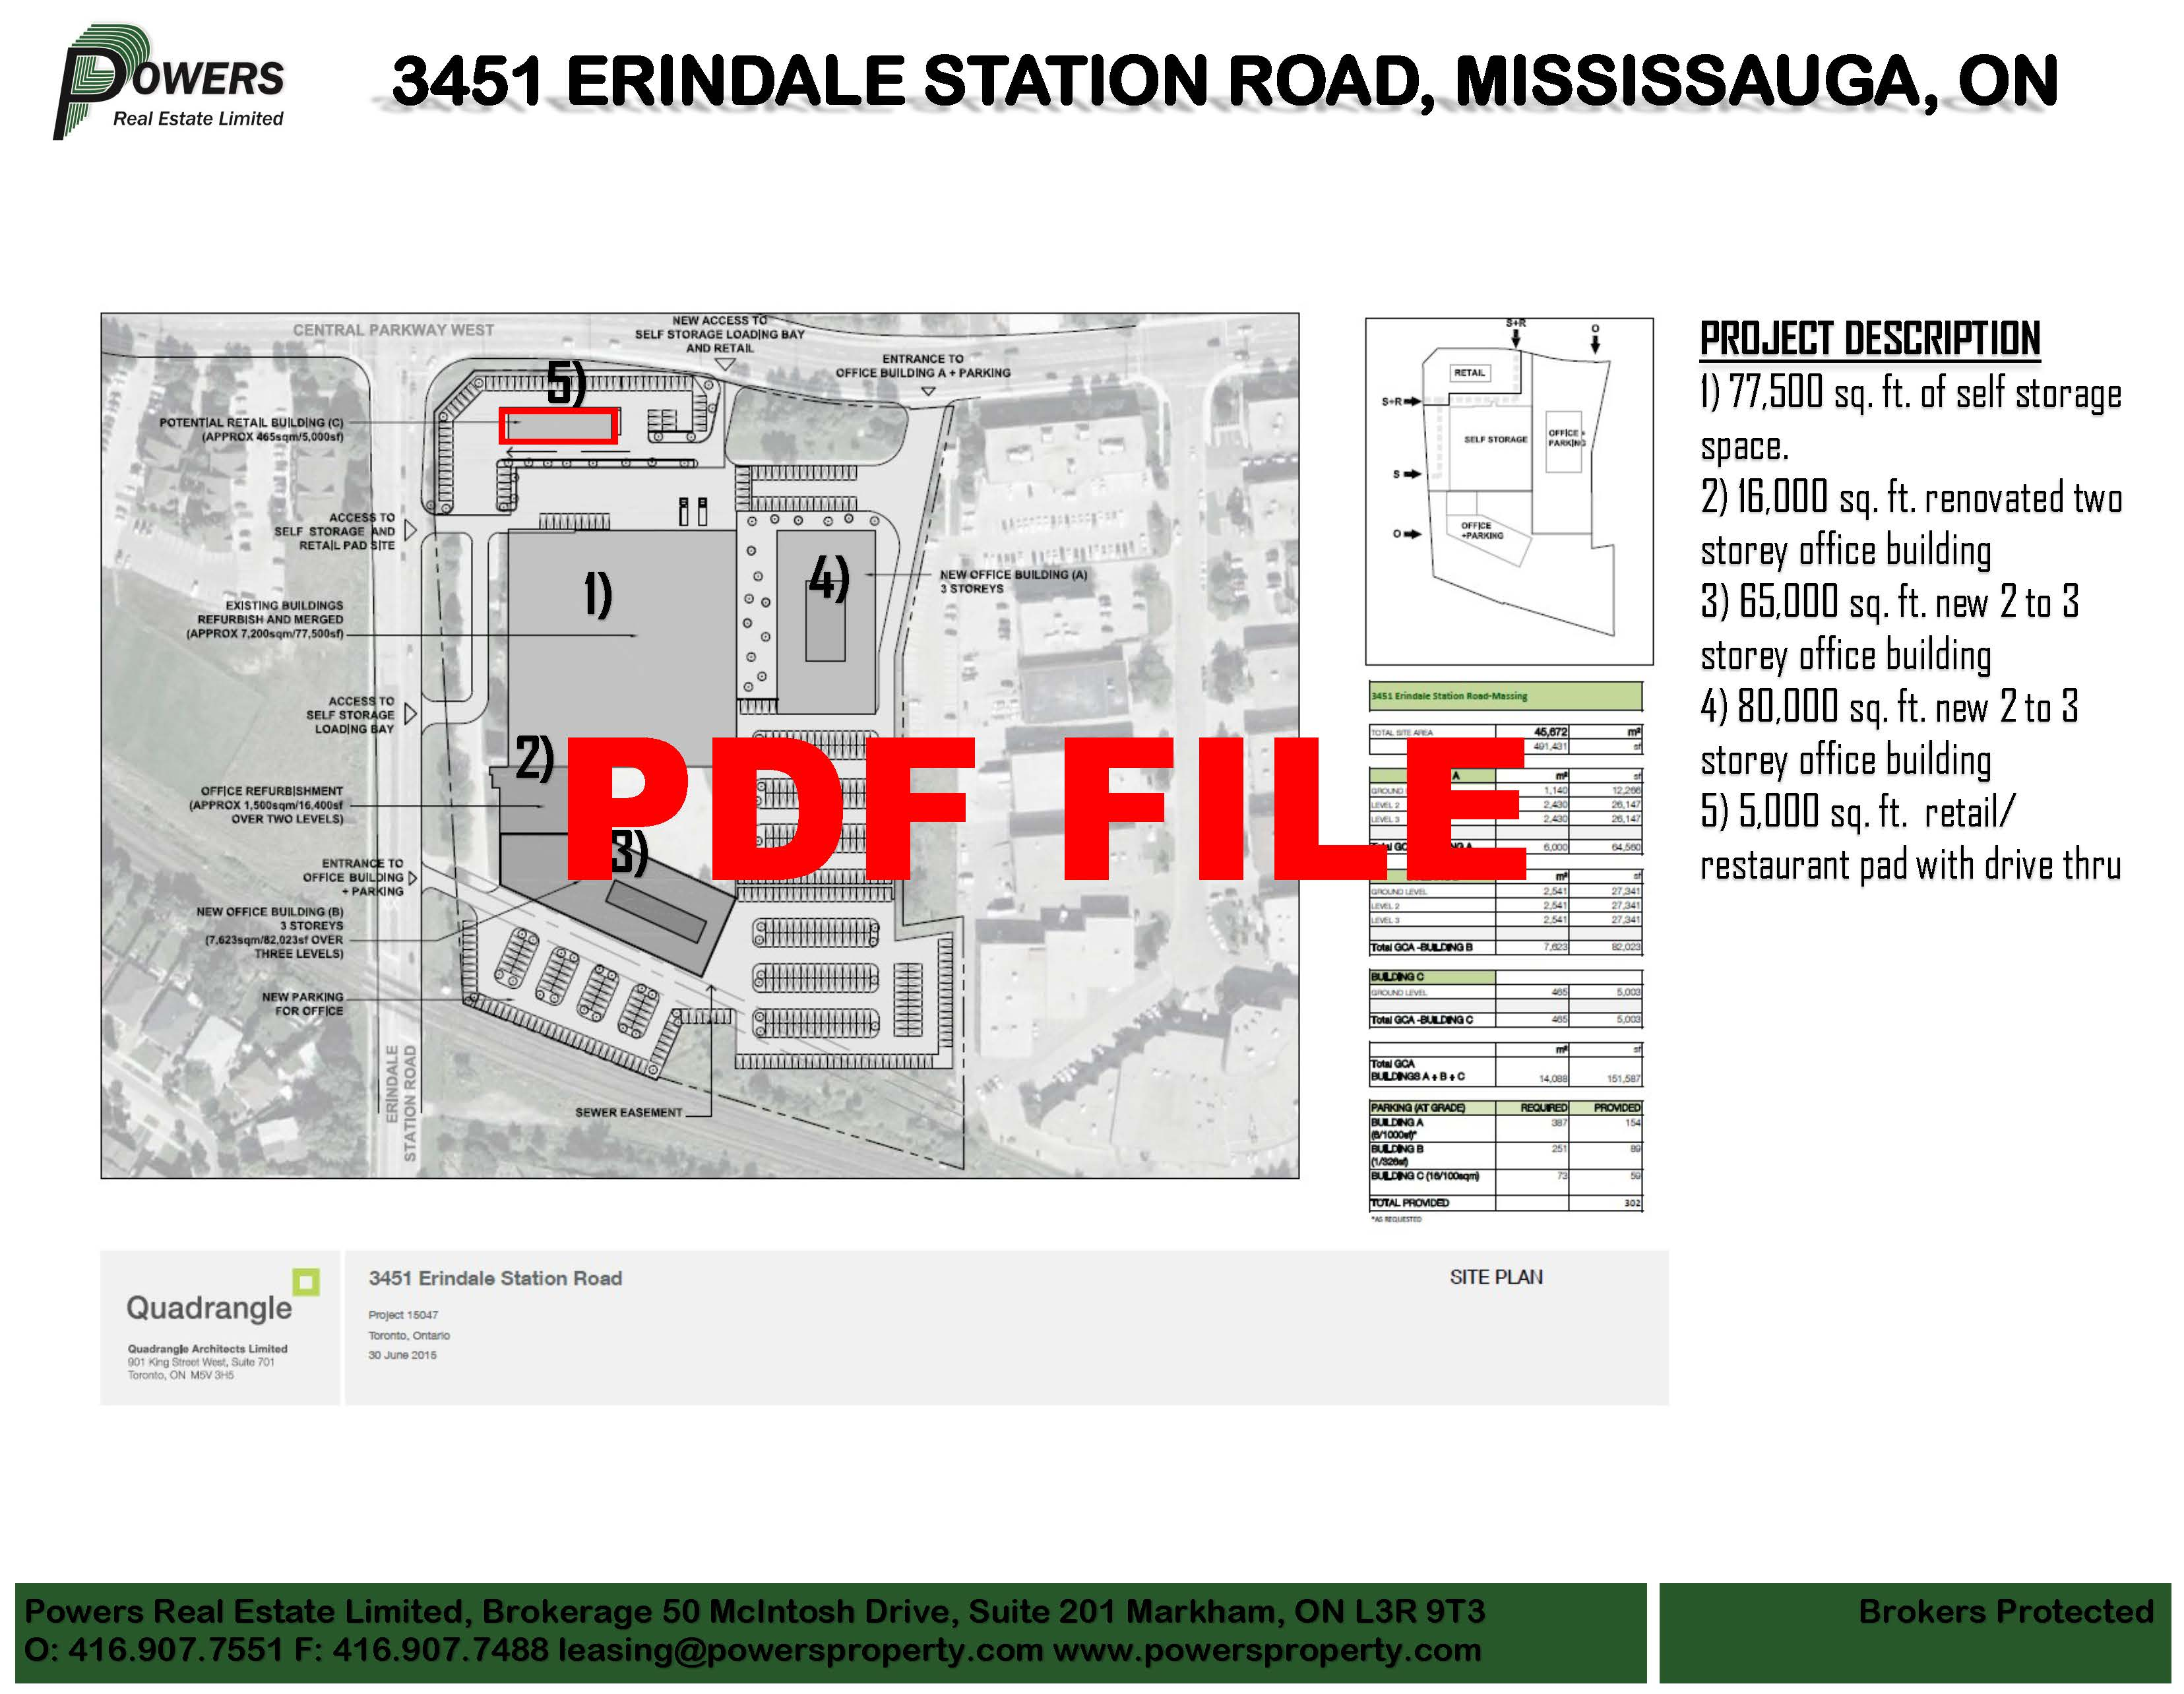 Pages from 3451 Erindale Station Marketing Brochure